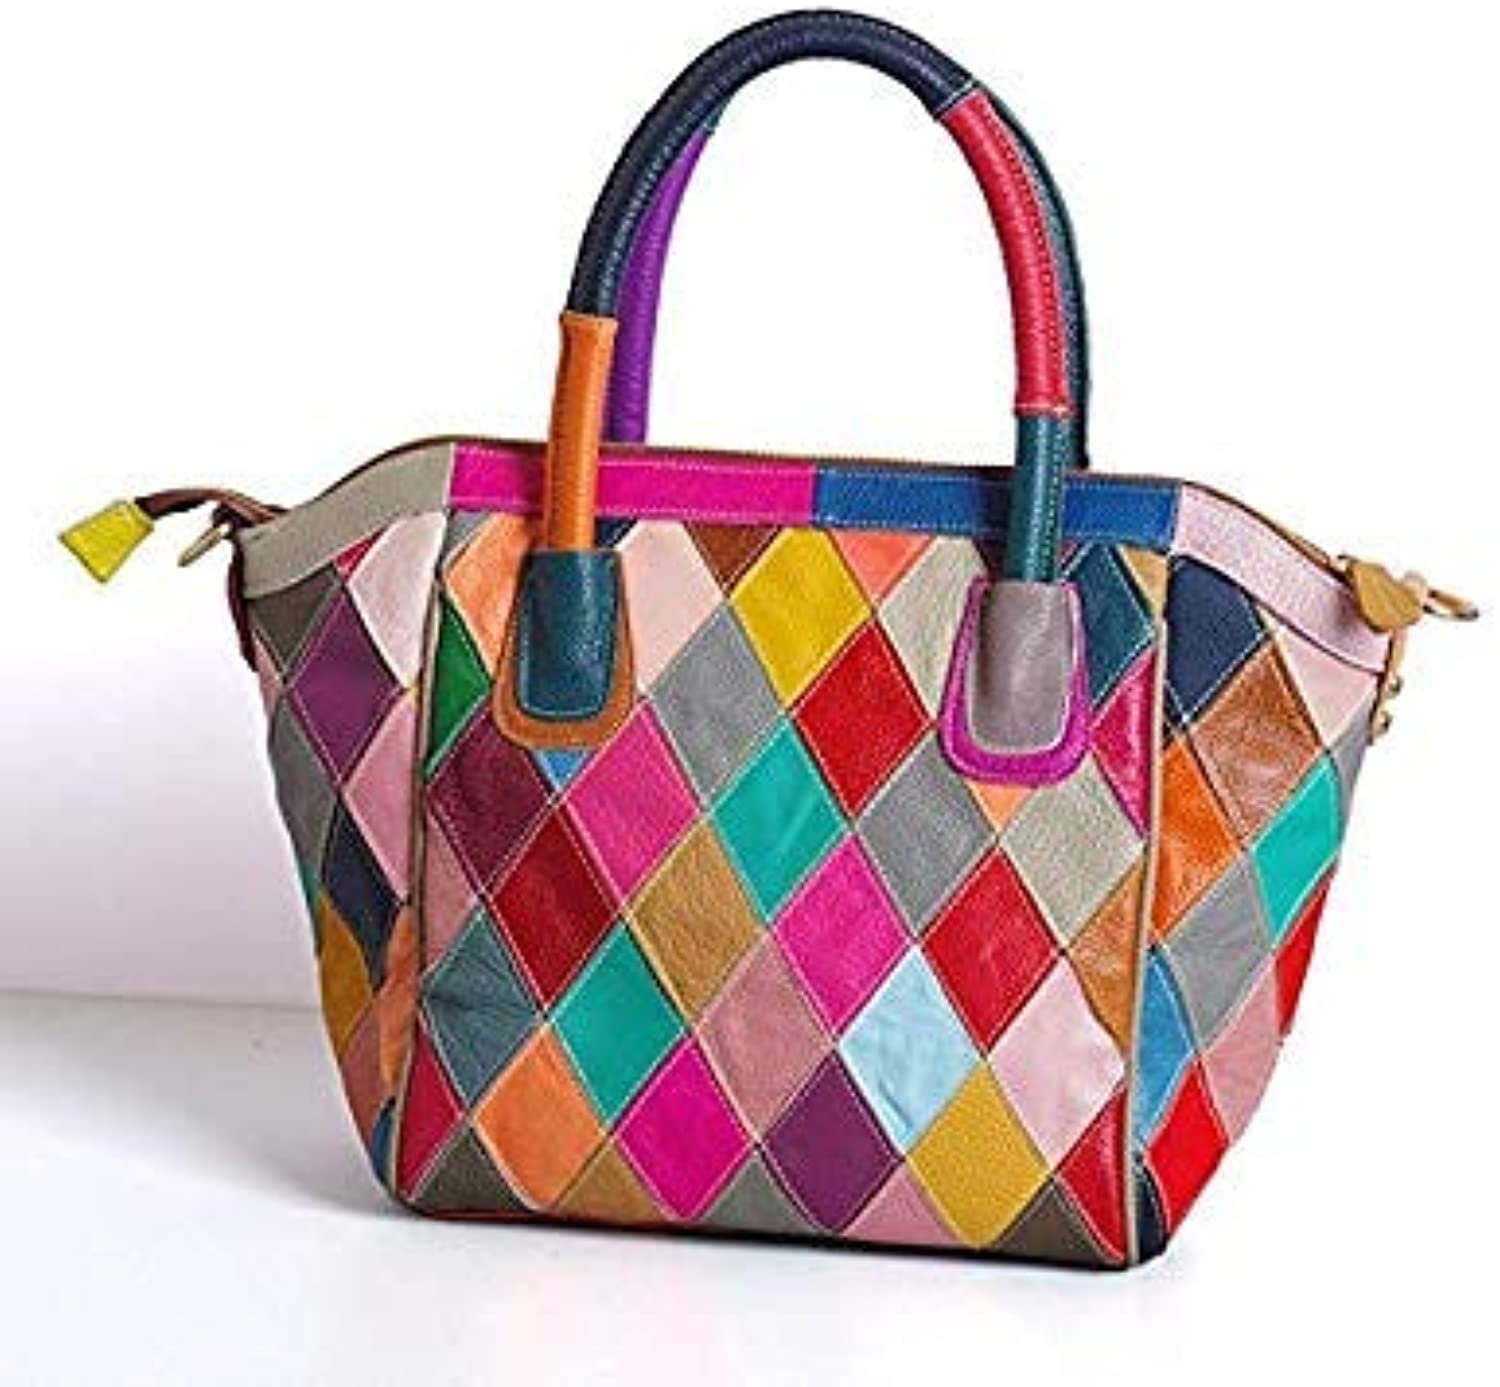 Bloomerang CHSANATO Drop Shipping Real Cow Leather Tote Bags for Women Ladies Handbags Geometric Patchwork colorful Plaid Woman Bag color K357 colorful 26x40x27x14cm